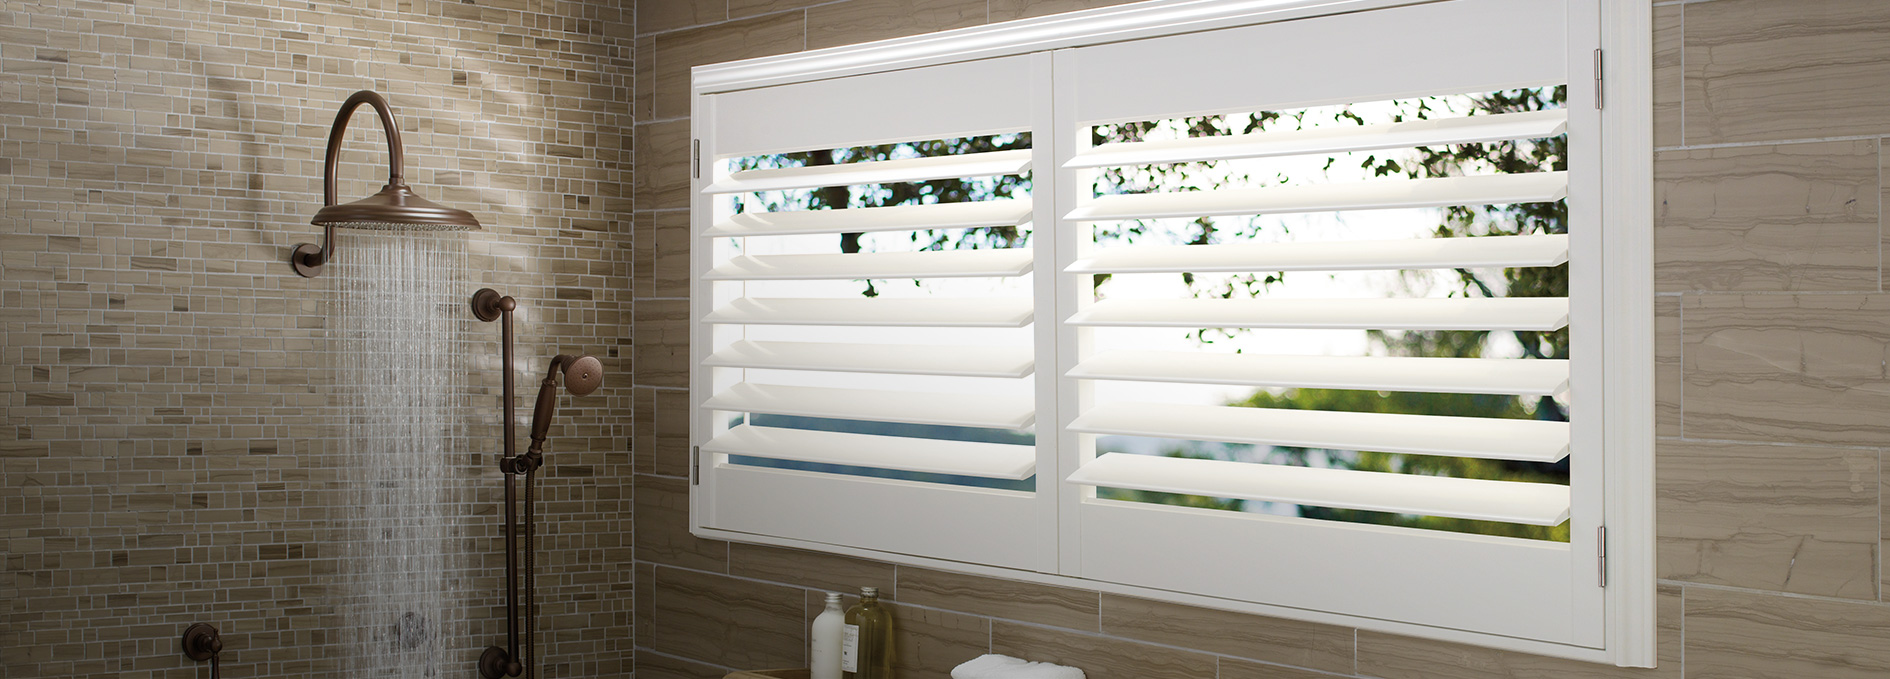 Bathroom window treatments blinds for the bathroom for Window design solutions